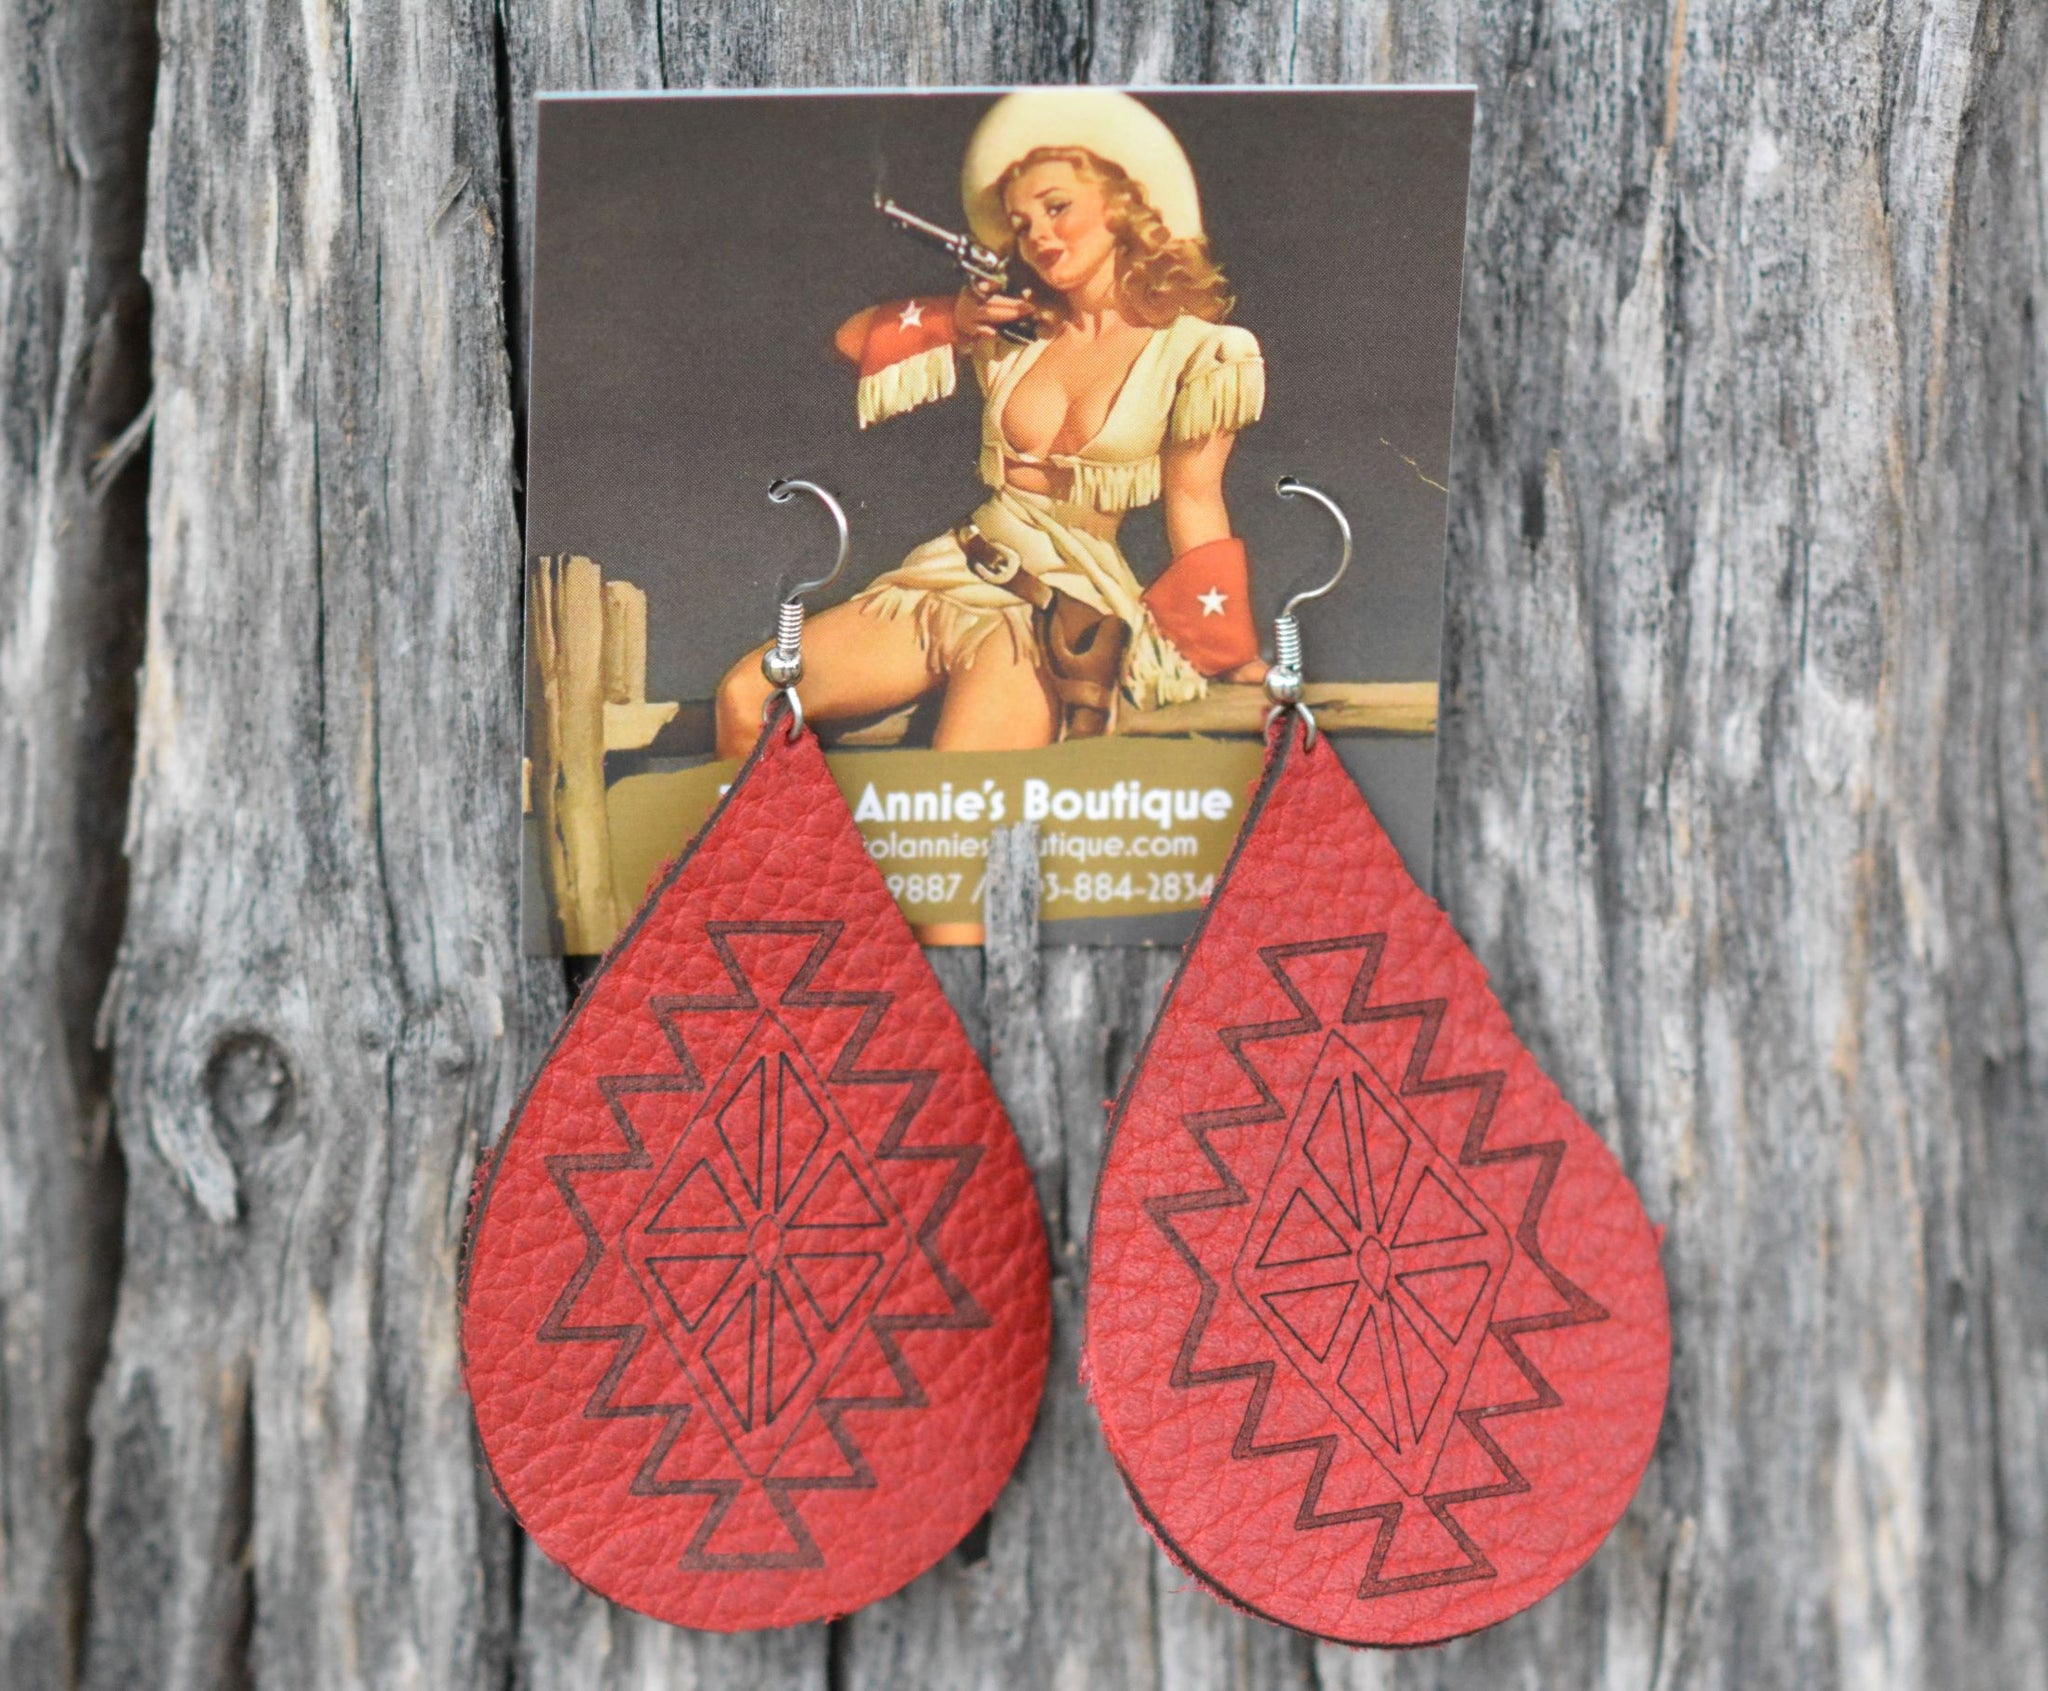 Custom Leather Earrings - Pistol Annie's Boutique